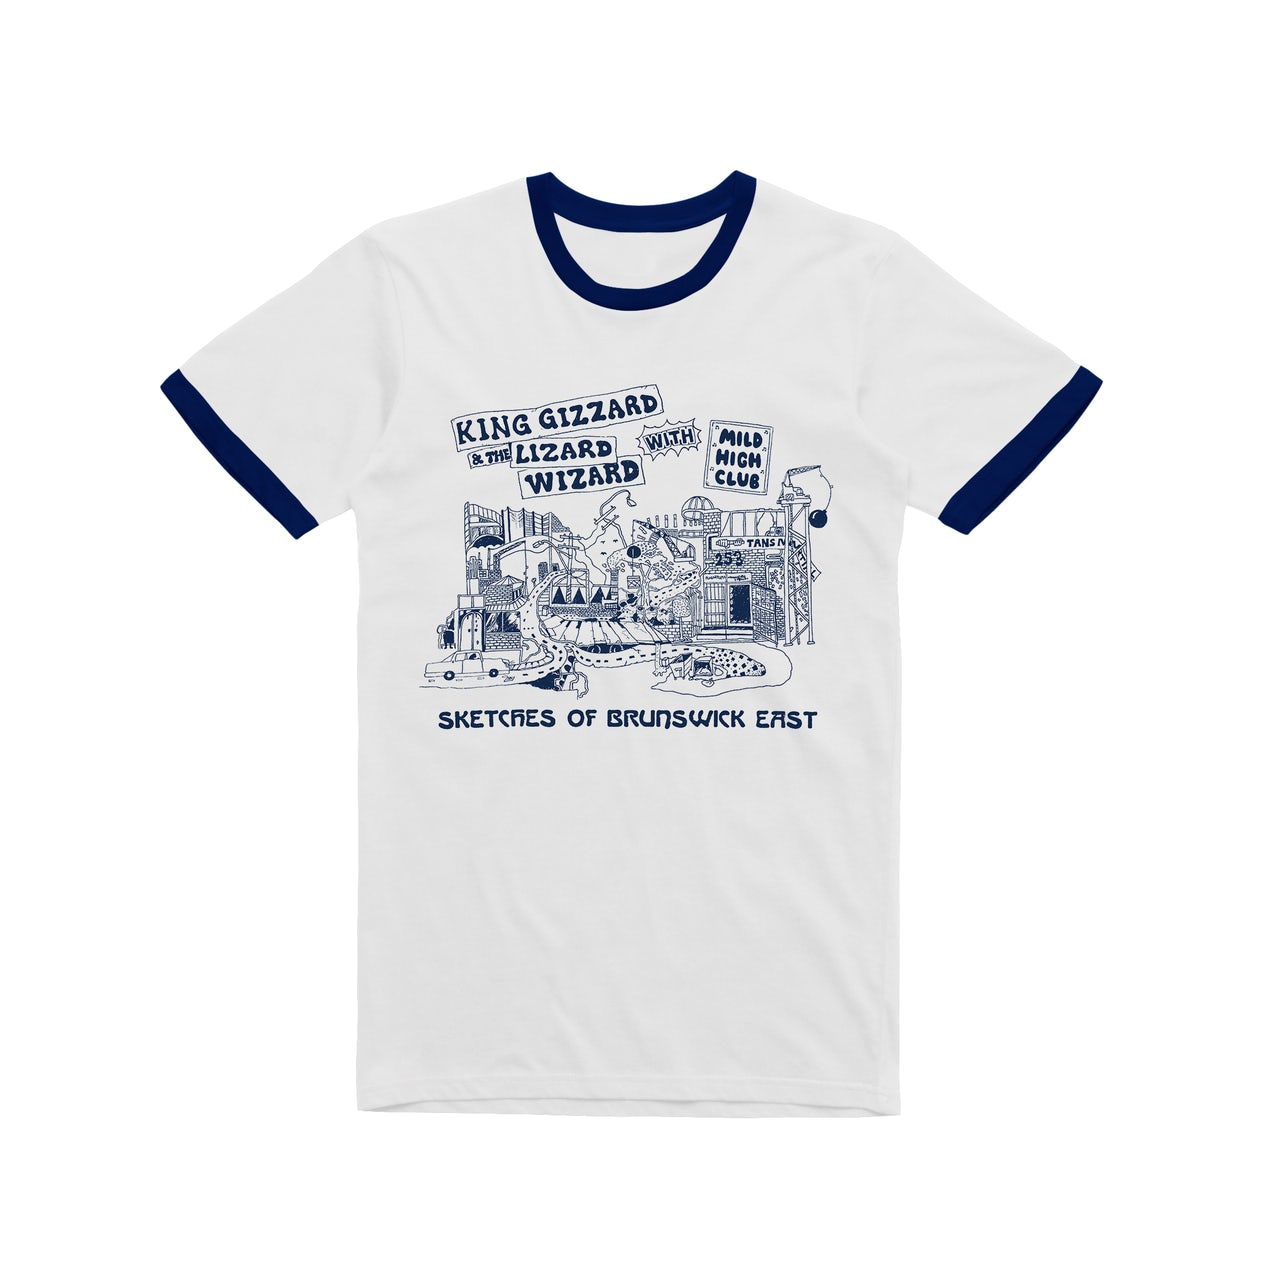 bbf2db1c81 King Gizzard & The Lizard Wizard Sketches of Brunswick / Navy Ringer T-shirt